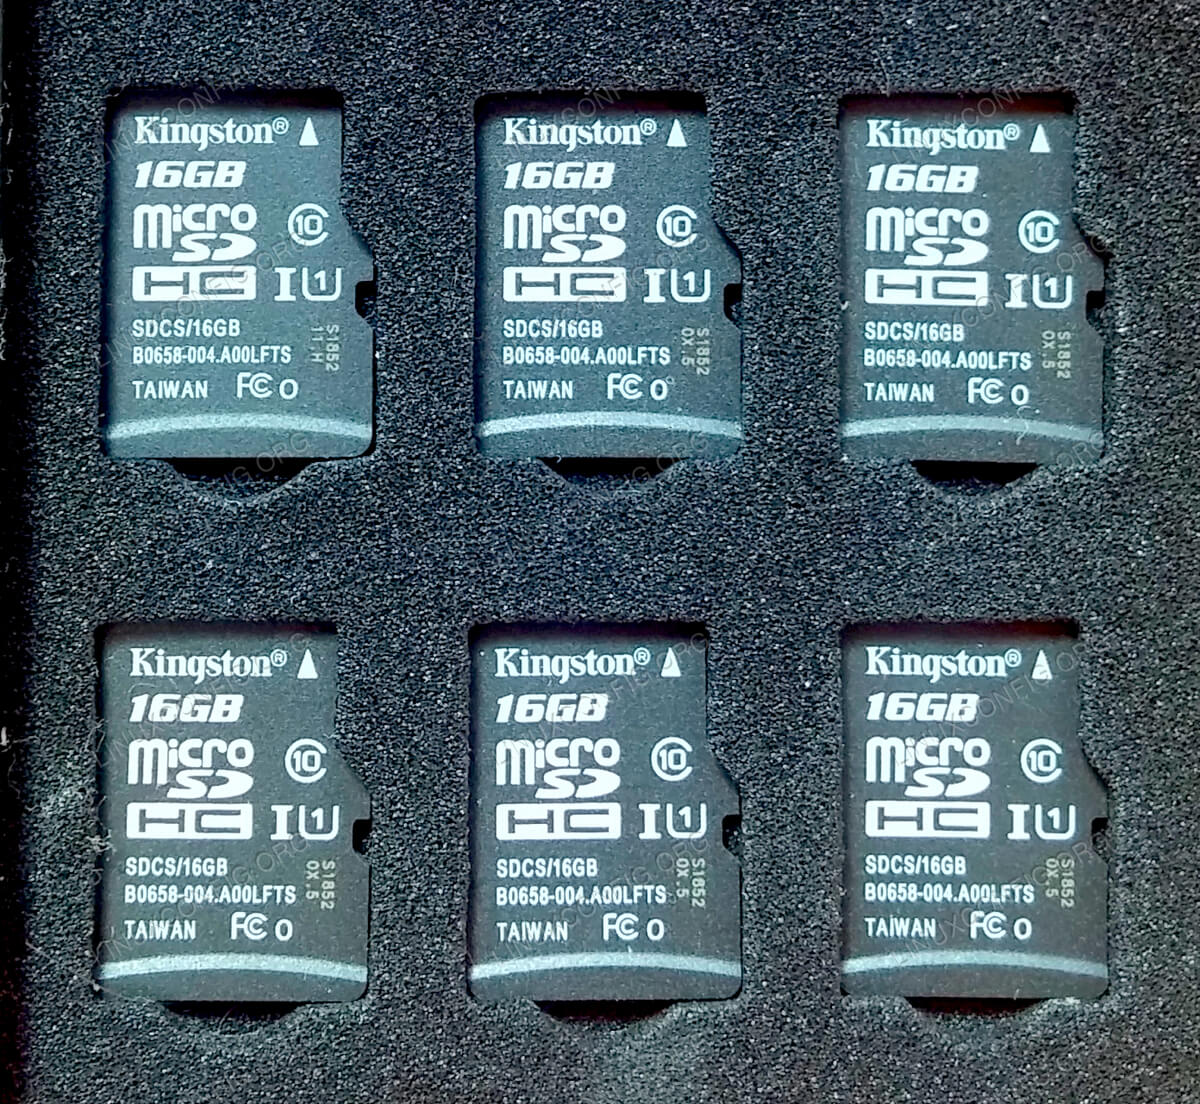 You will need four MicroSD cards, at least 16GB in size